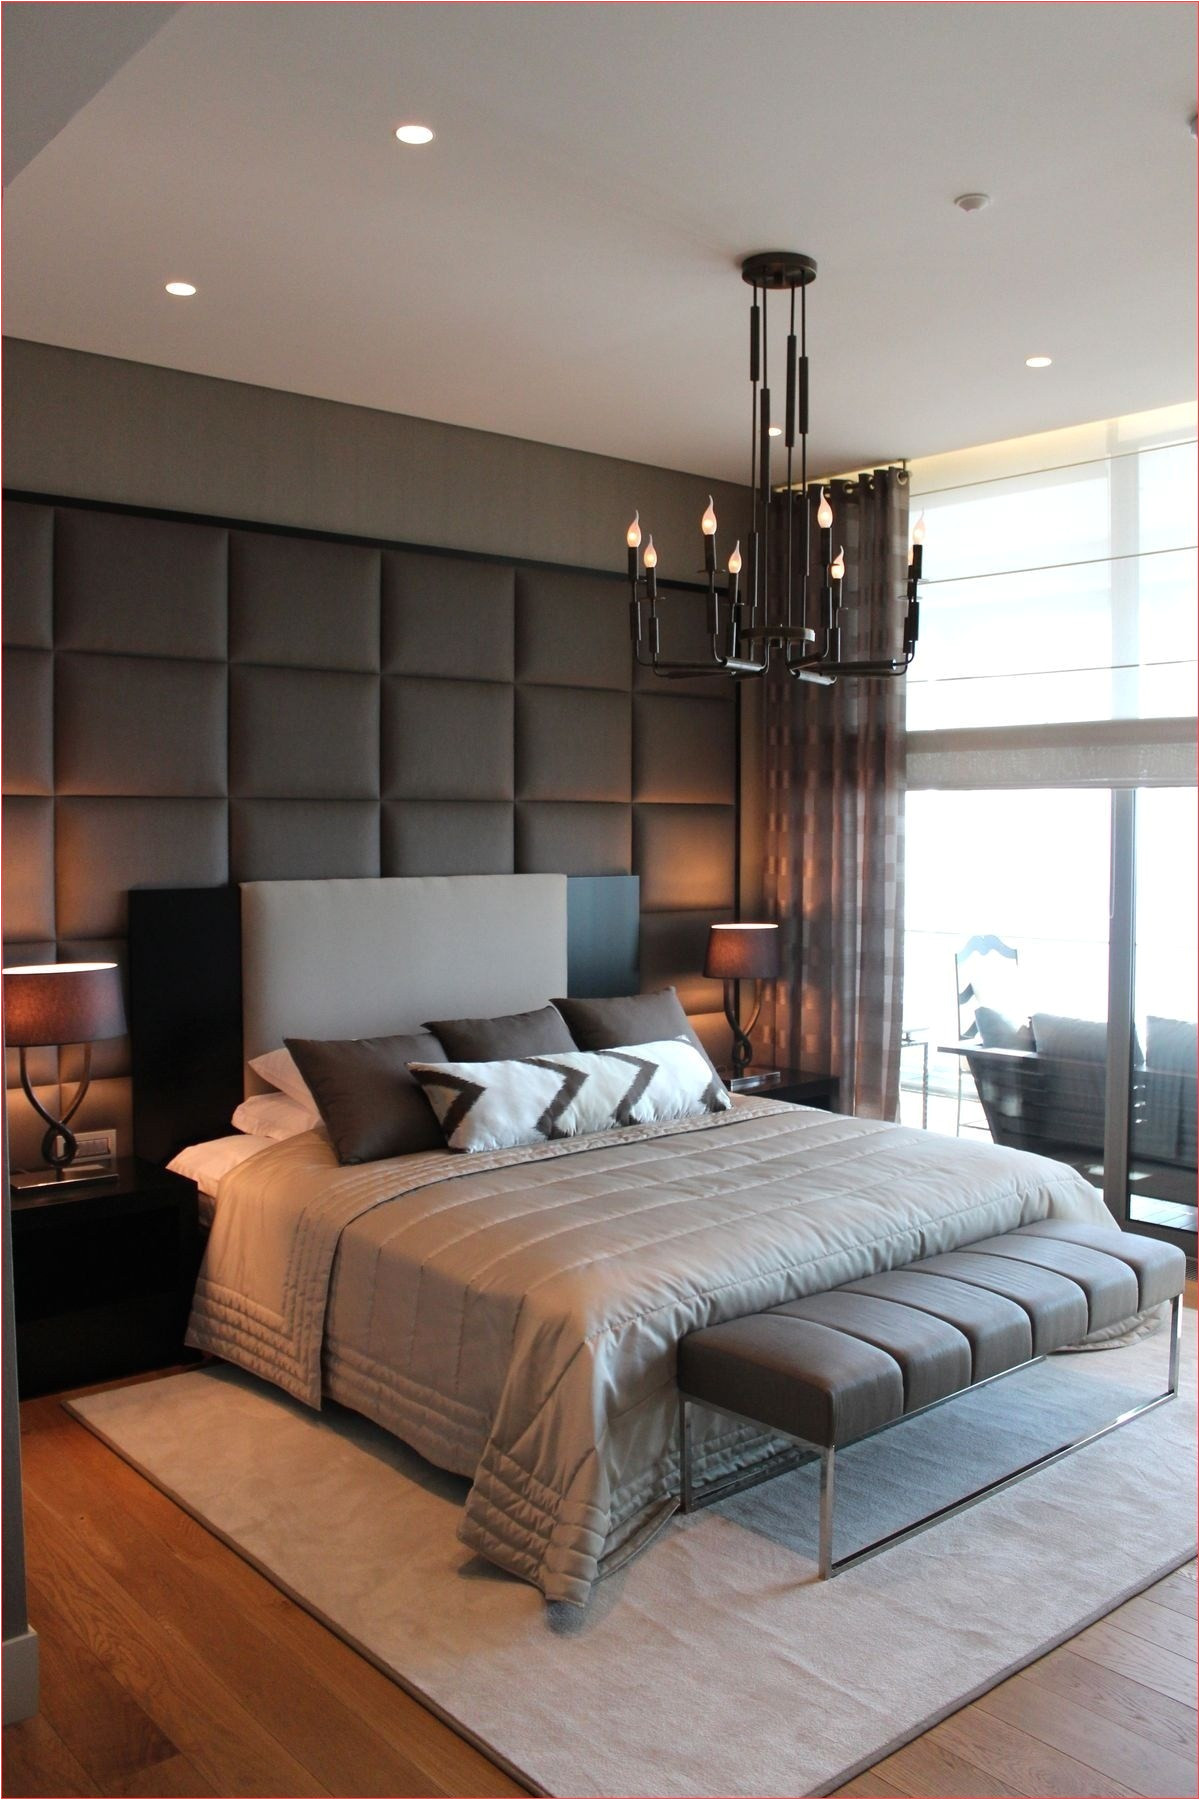 Bed Alternatives Small Spaces Inspirational Small Bedroom solutions ...